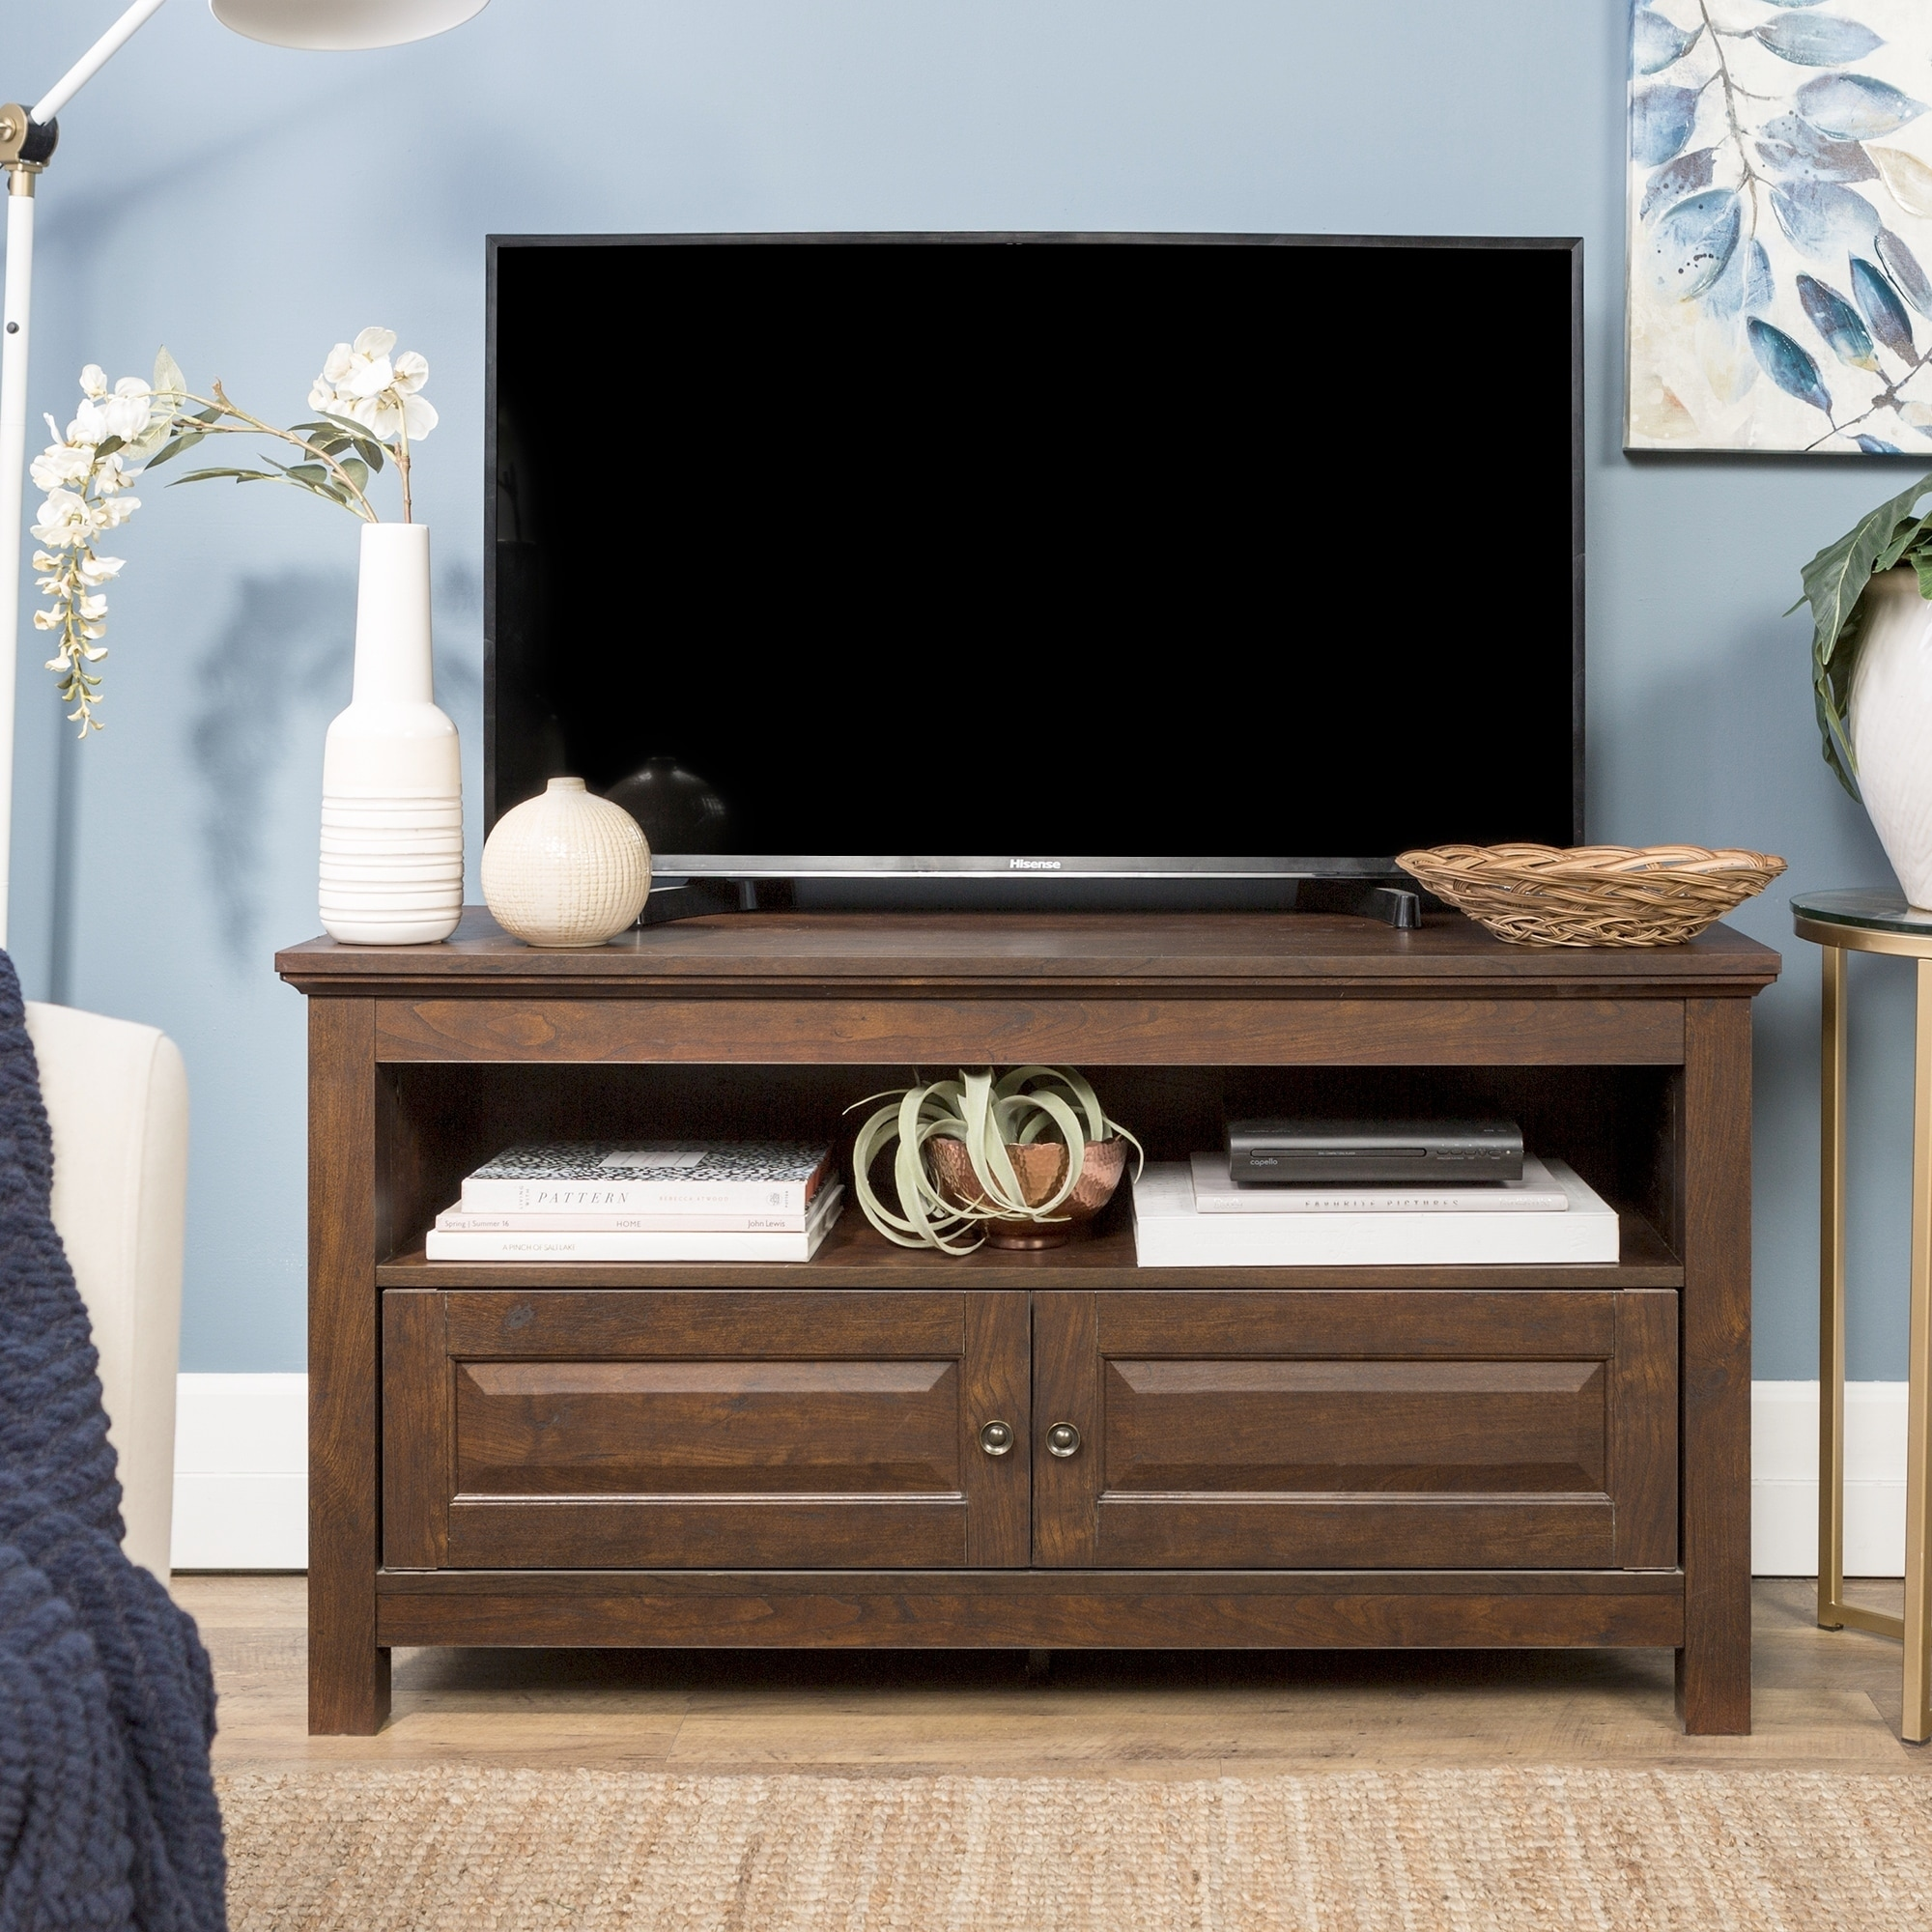 on sale 29b7b 74645 Middlebrook Designs 44-inch TV Stand Console, Brown, Entertainment Center -  44 x 16 x 23h